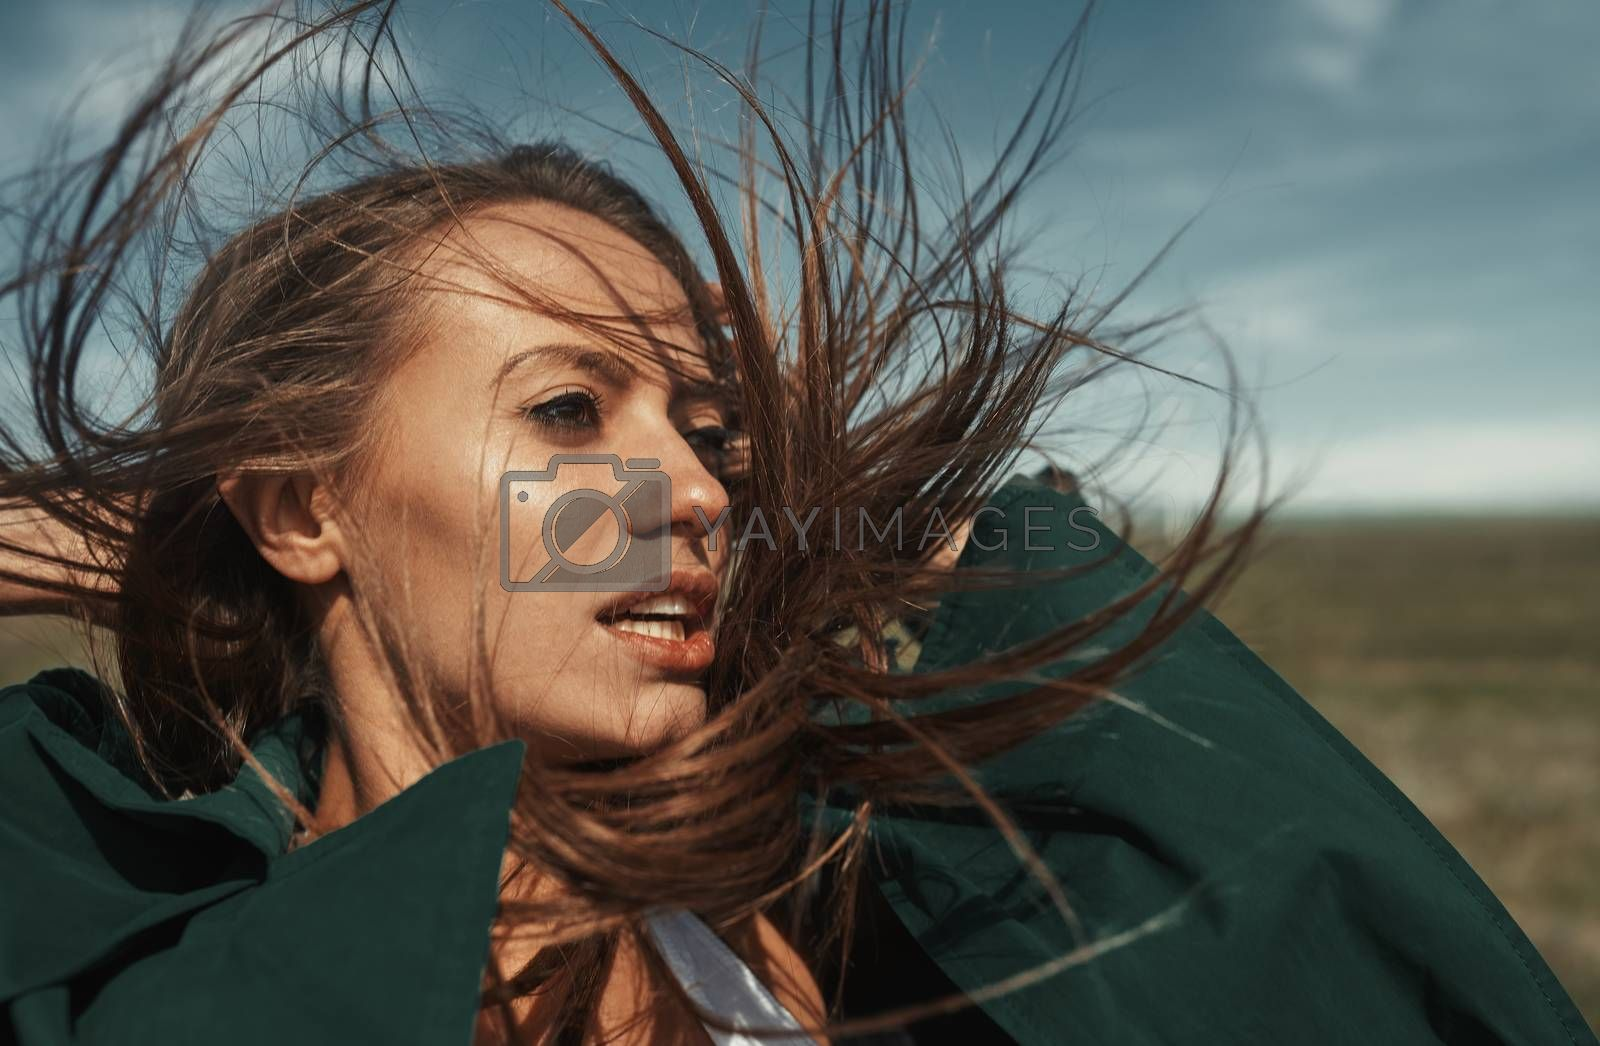 Woman outdoors with tousled wind blown hairs